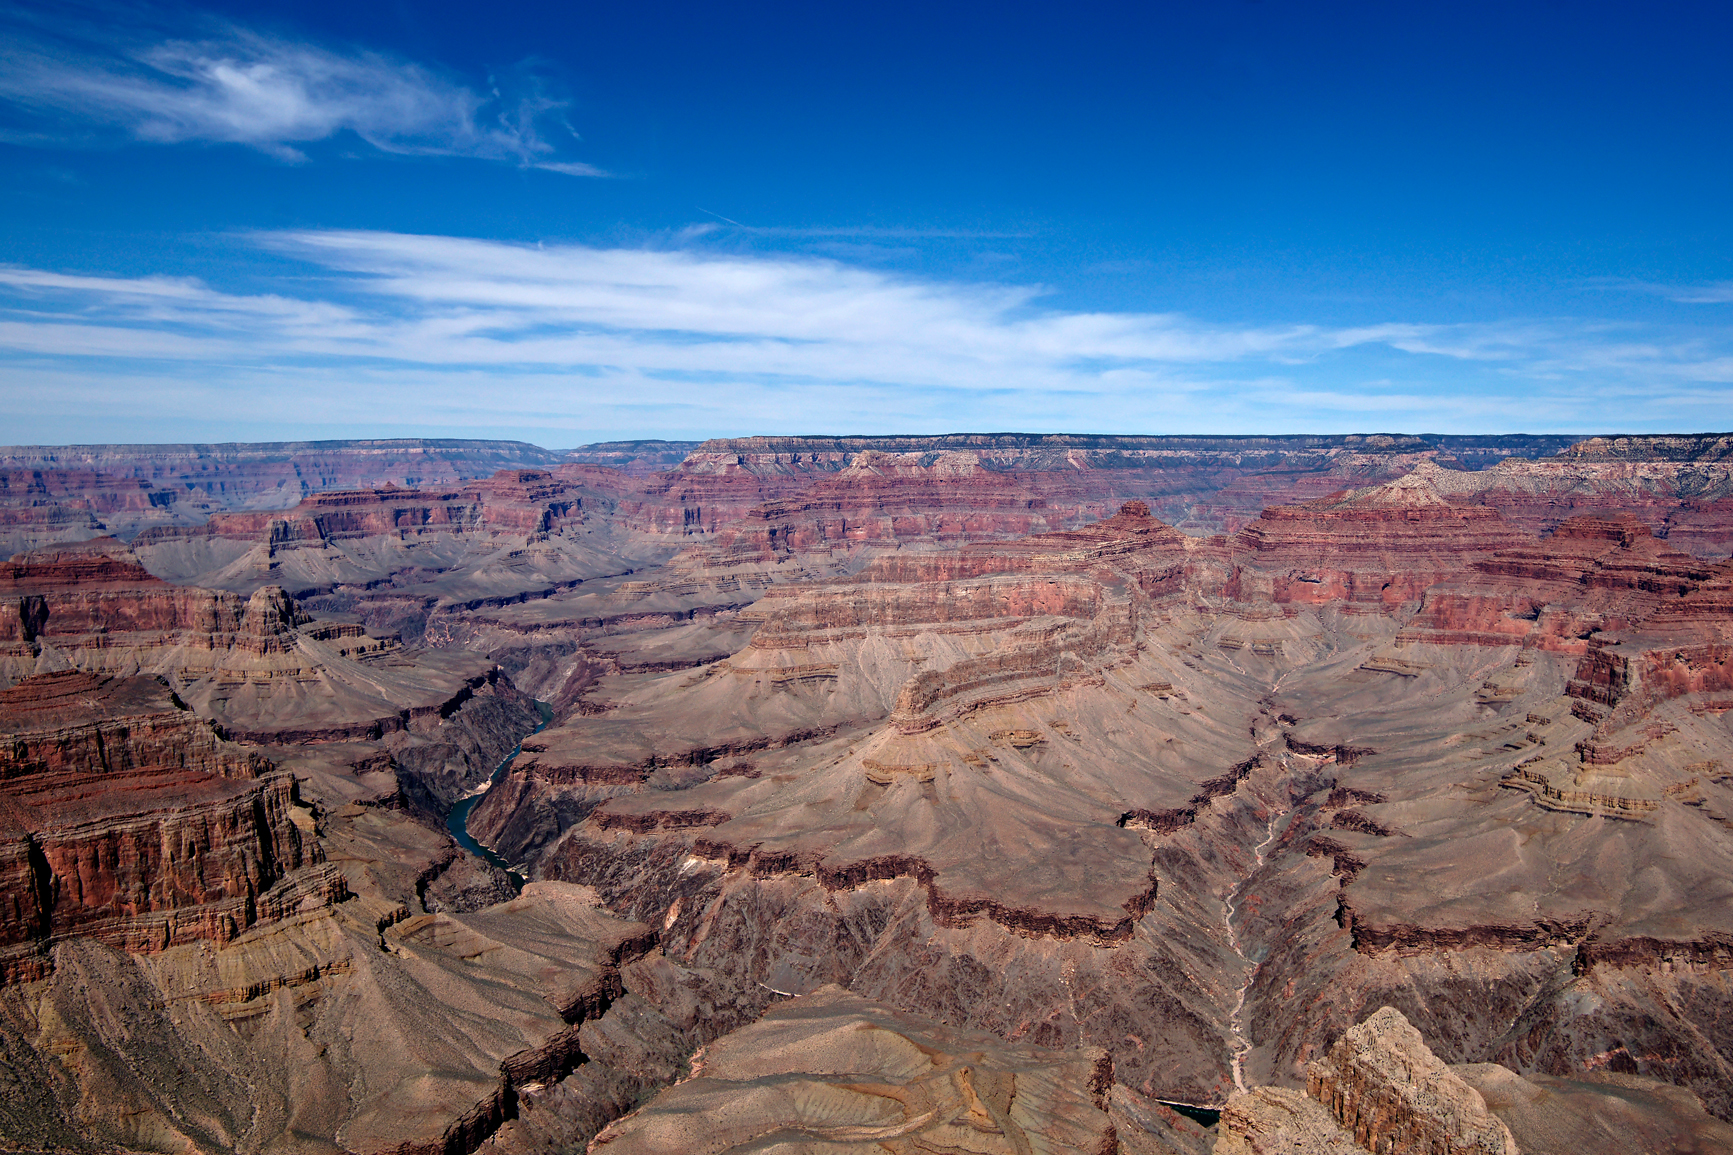 Grand canyon afternoon blue sky photo